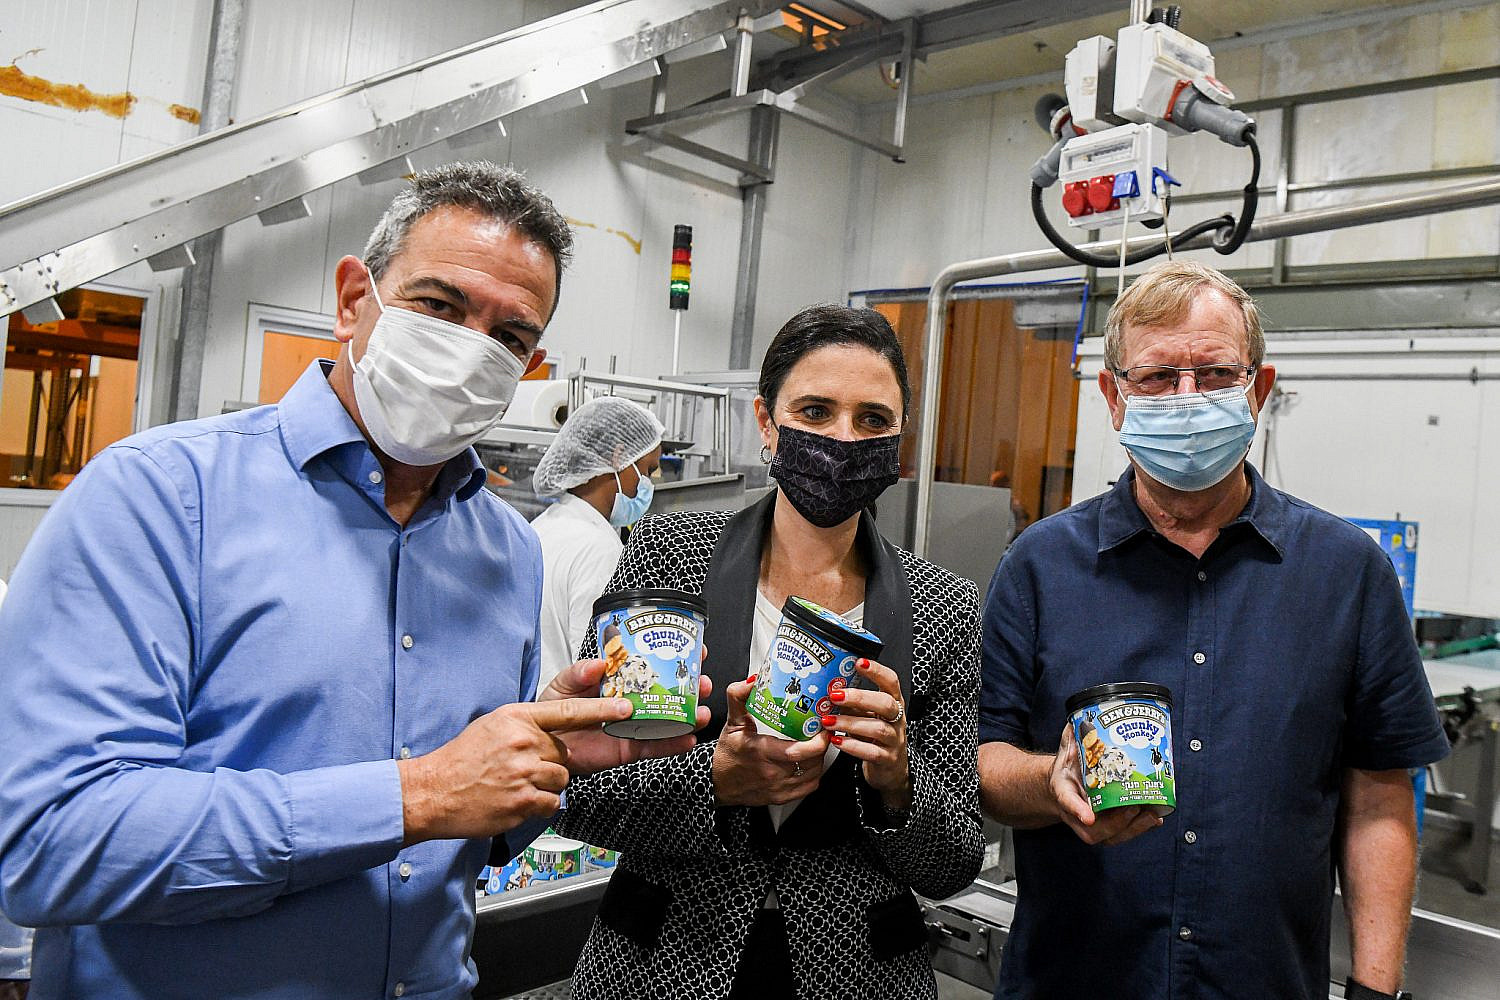 Israeli Interior Minister Ayelet Shaked tours the Ben and Jerry's factory near Kiryat Malakhi, with the CEO of the company's Israel distributor Avi Zinger (r), July 21, 2021. (Flash90)